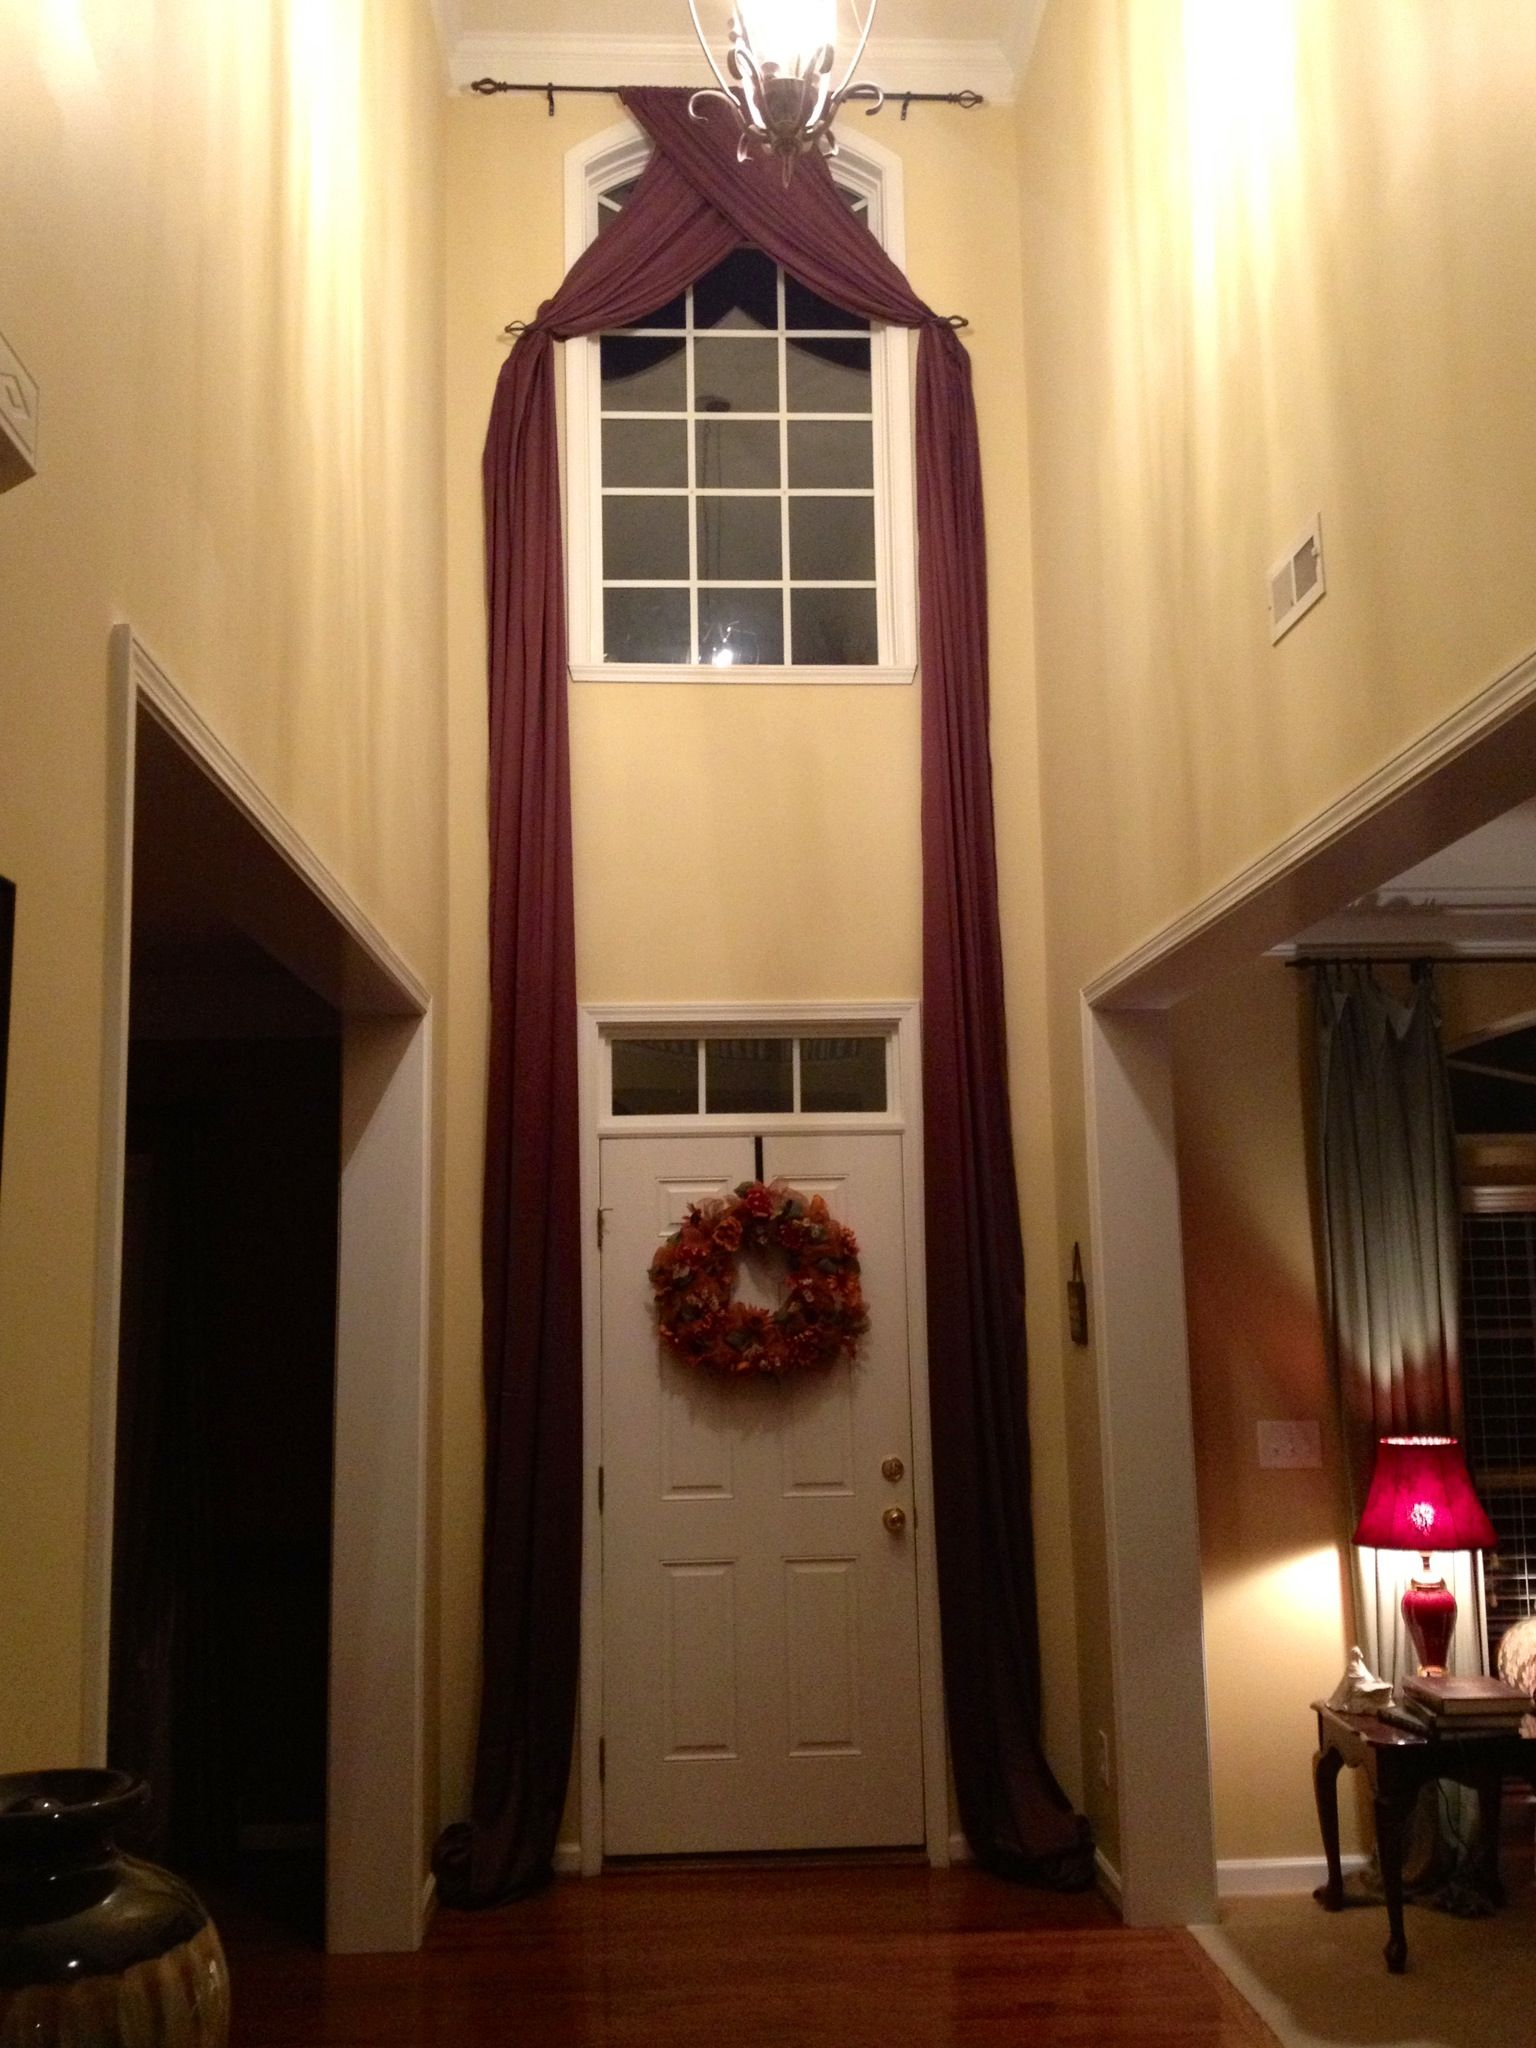 Blinds For Large Foyer Window : Two story foyer drapes decorating ideas pinterest